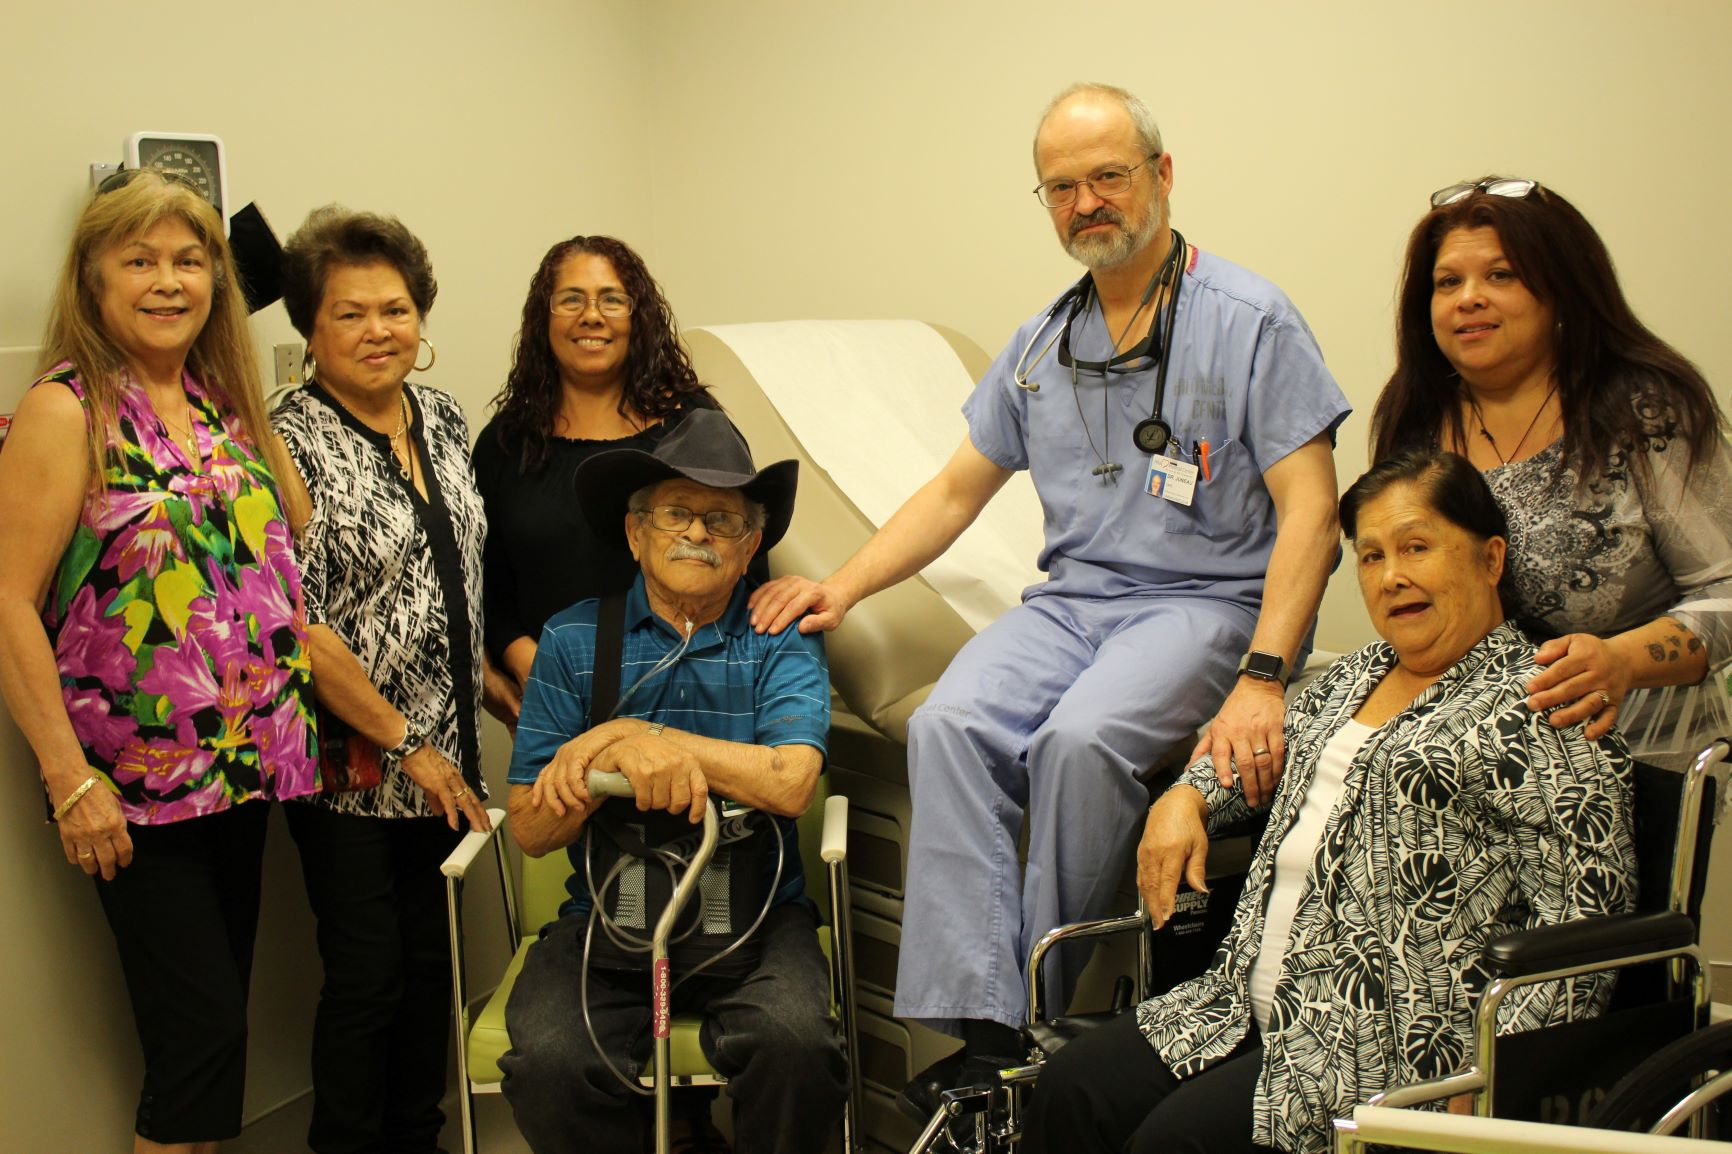 Interventional Cardiology staff with stroke survivors